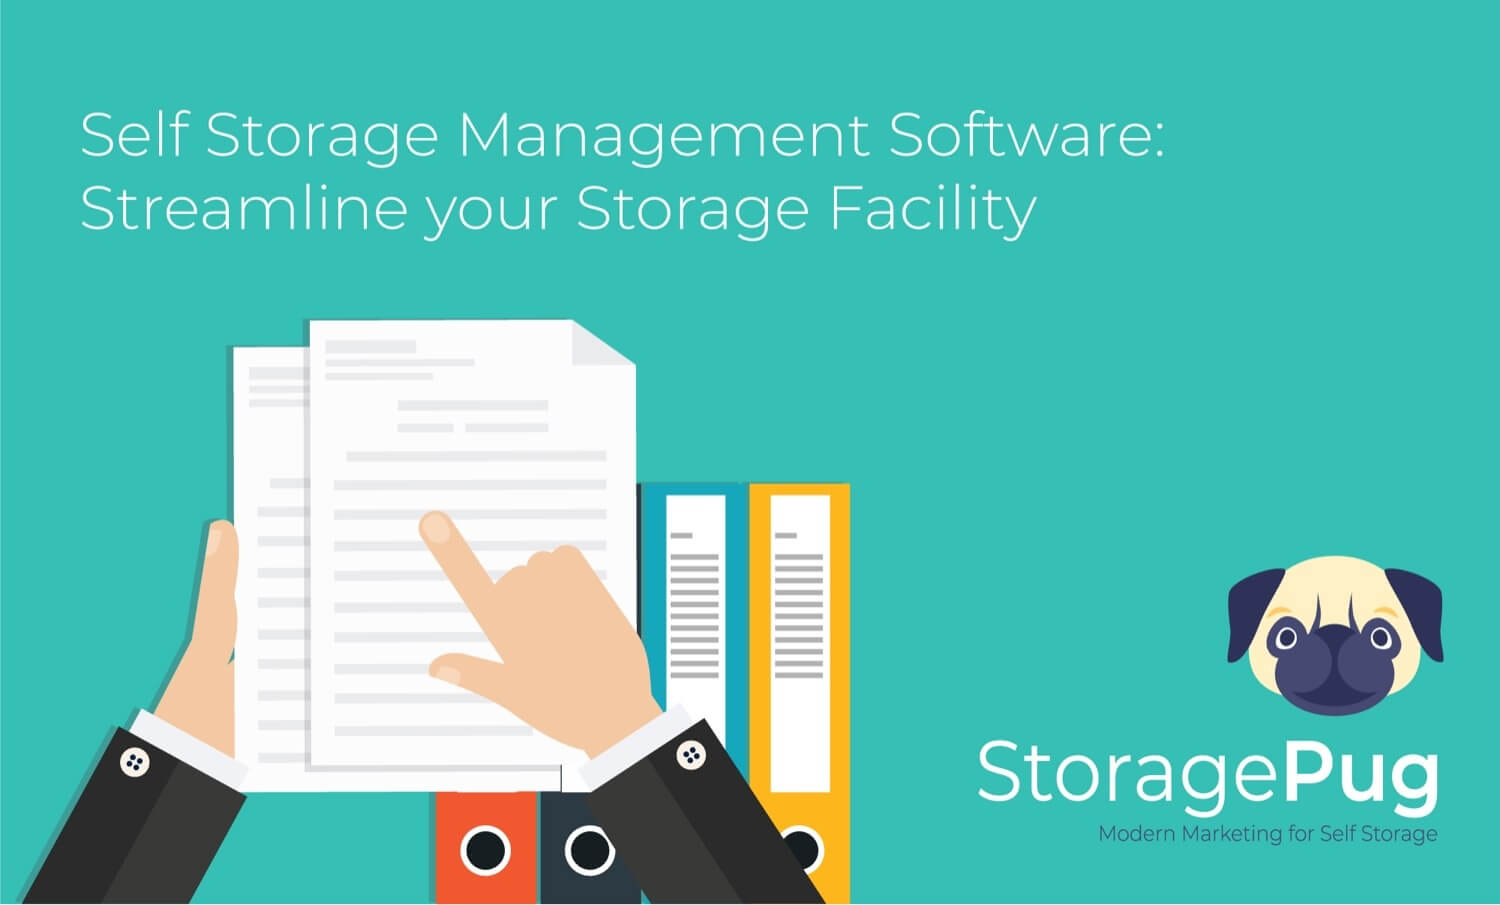 When searching for any type of self storage management software, it's important to know what the benefits are and which companies are competing for your business.